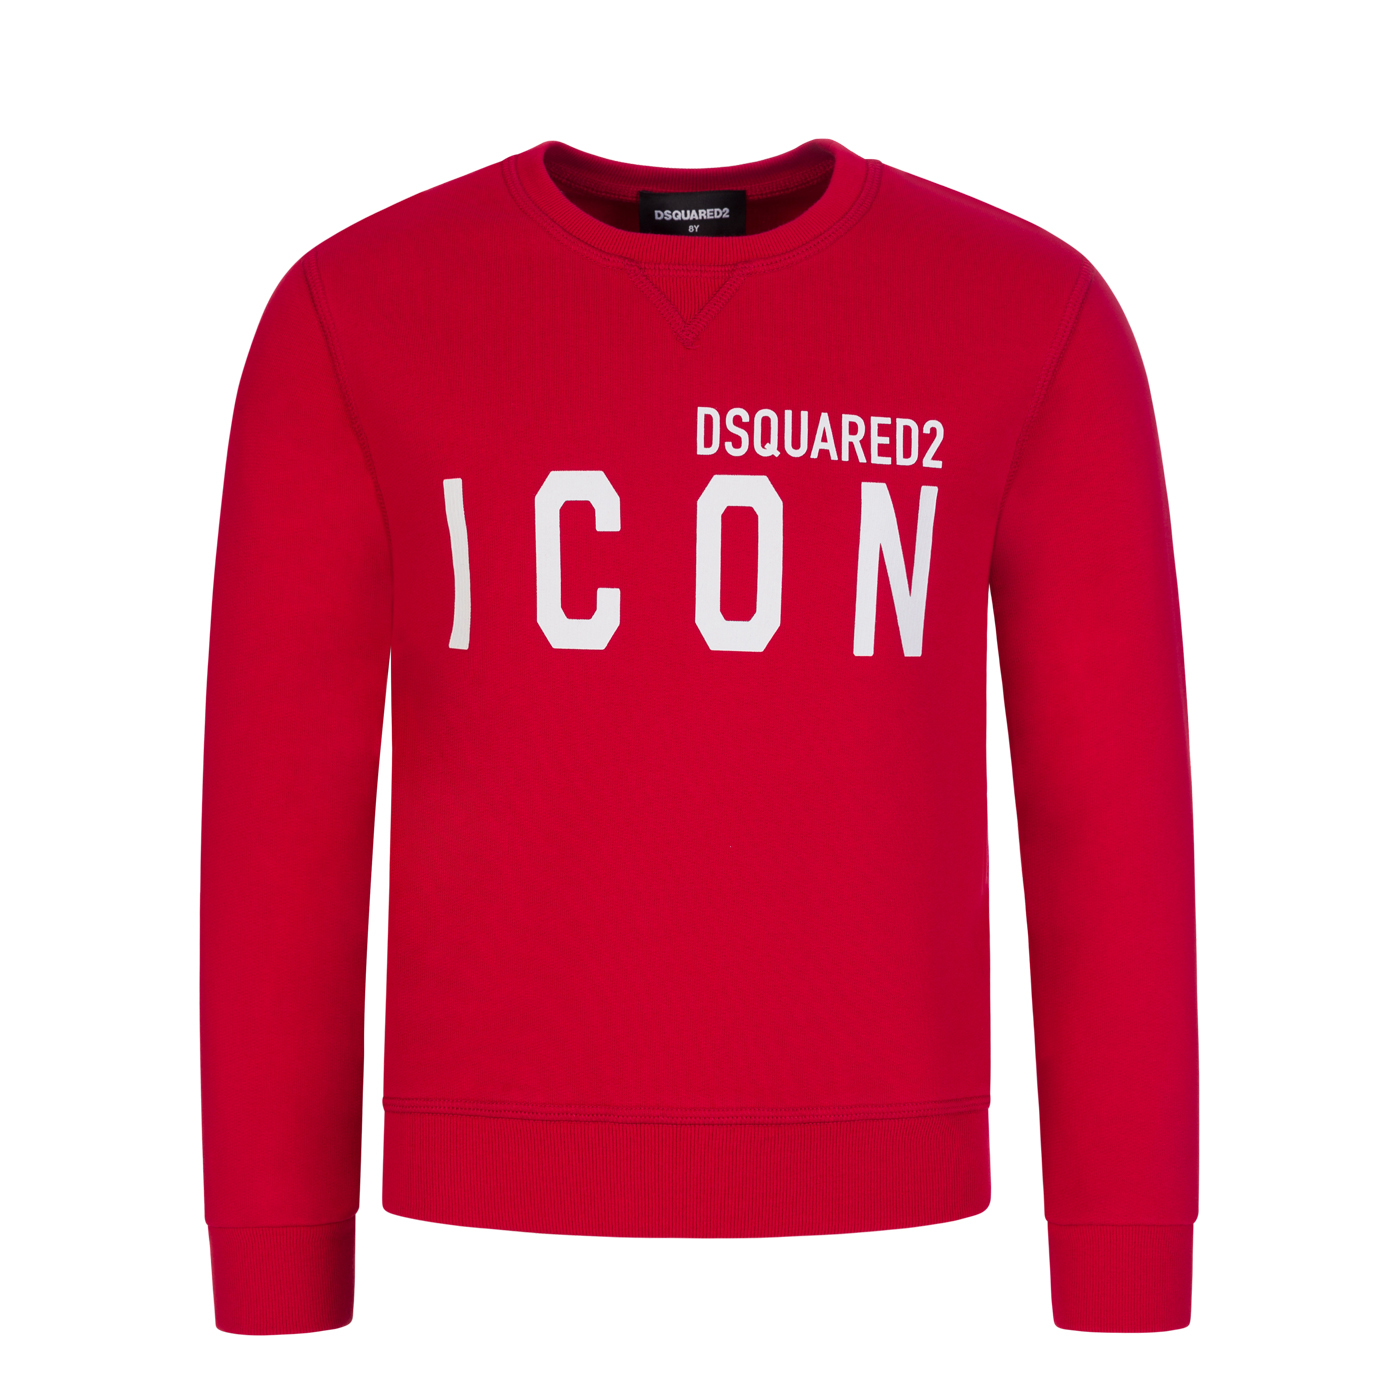 Dsquared2 Kids Red ICON Sweatshirt - Size 10 Years